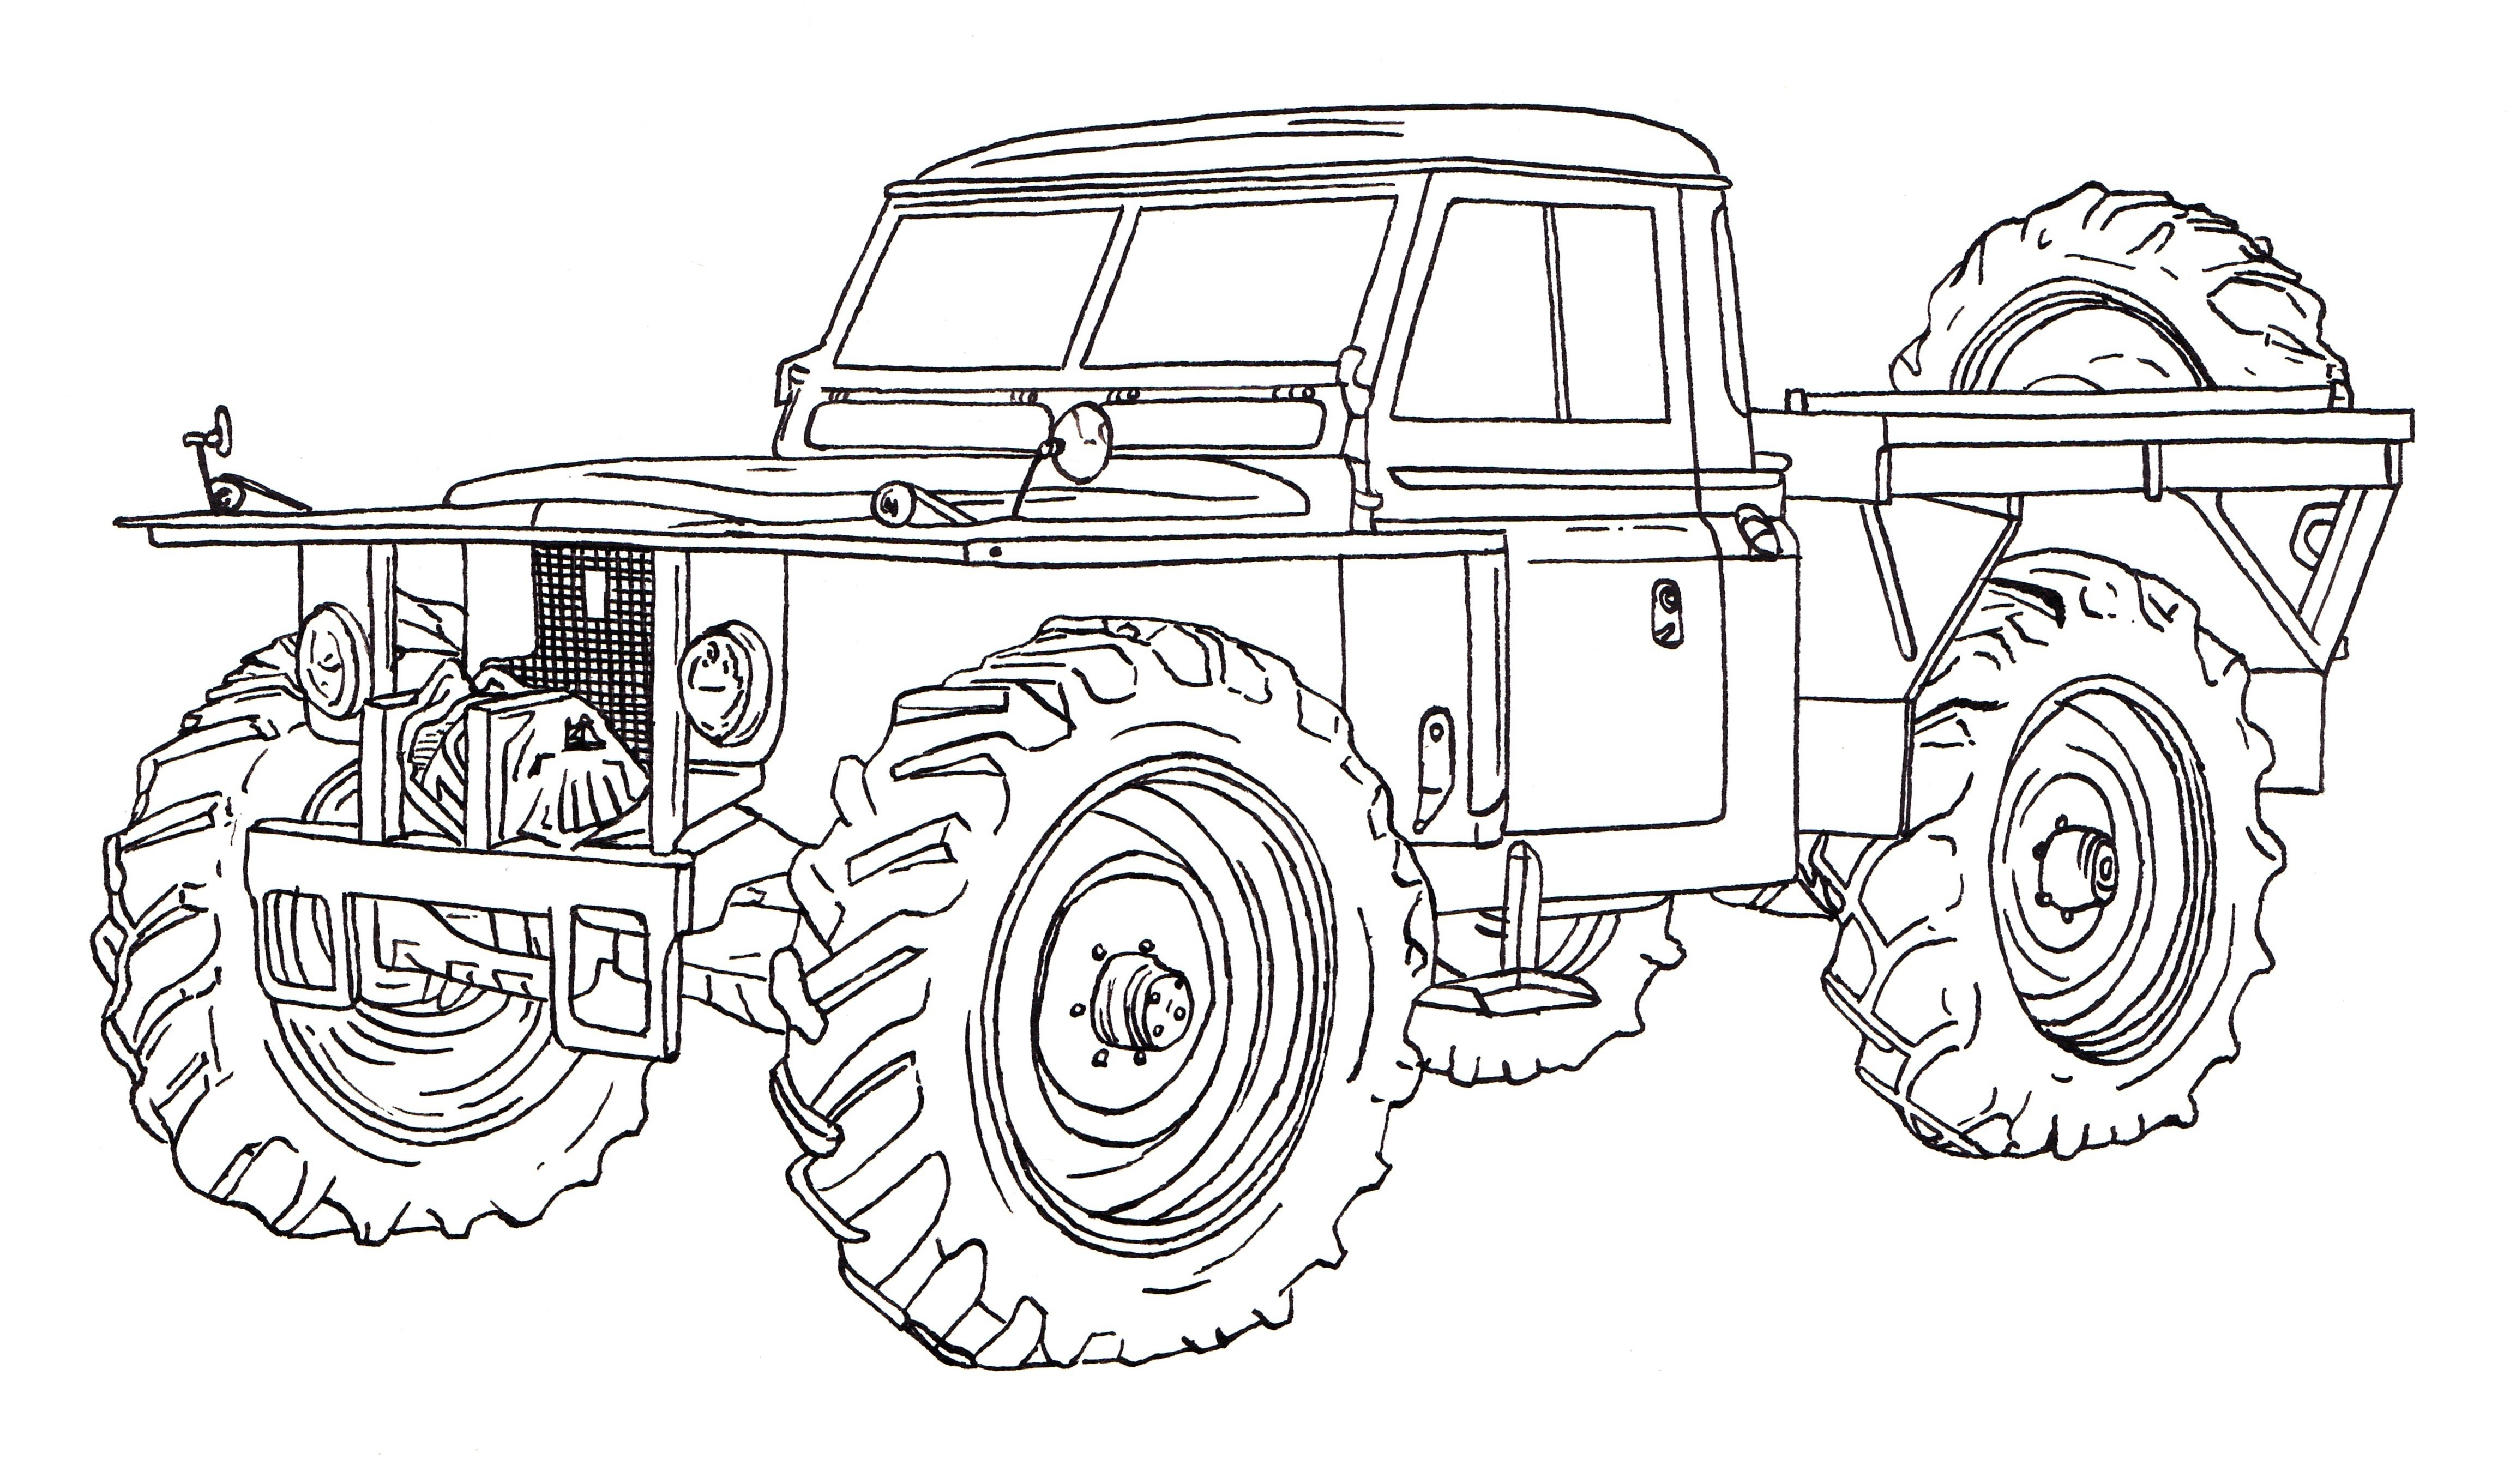 Super Car Land Rover Defender Coloring Page for Kids Best Land Download Of Land Rover Defender 90 Ink Drawing Collection